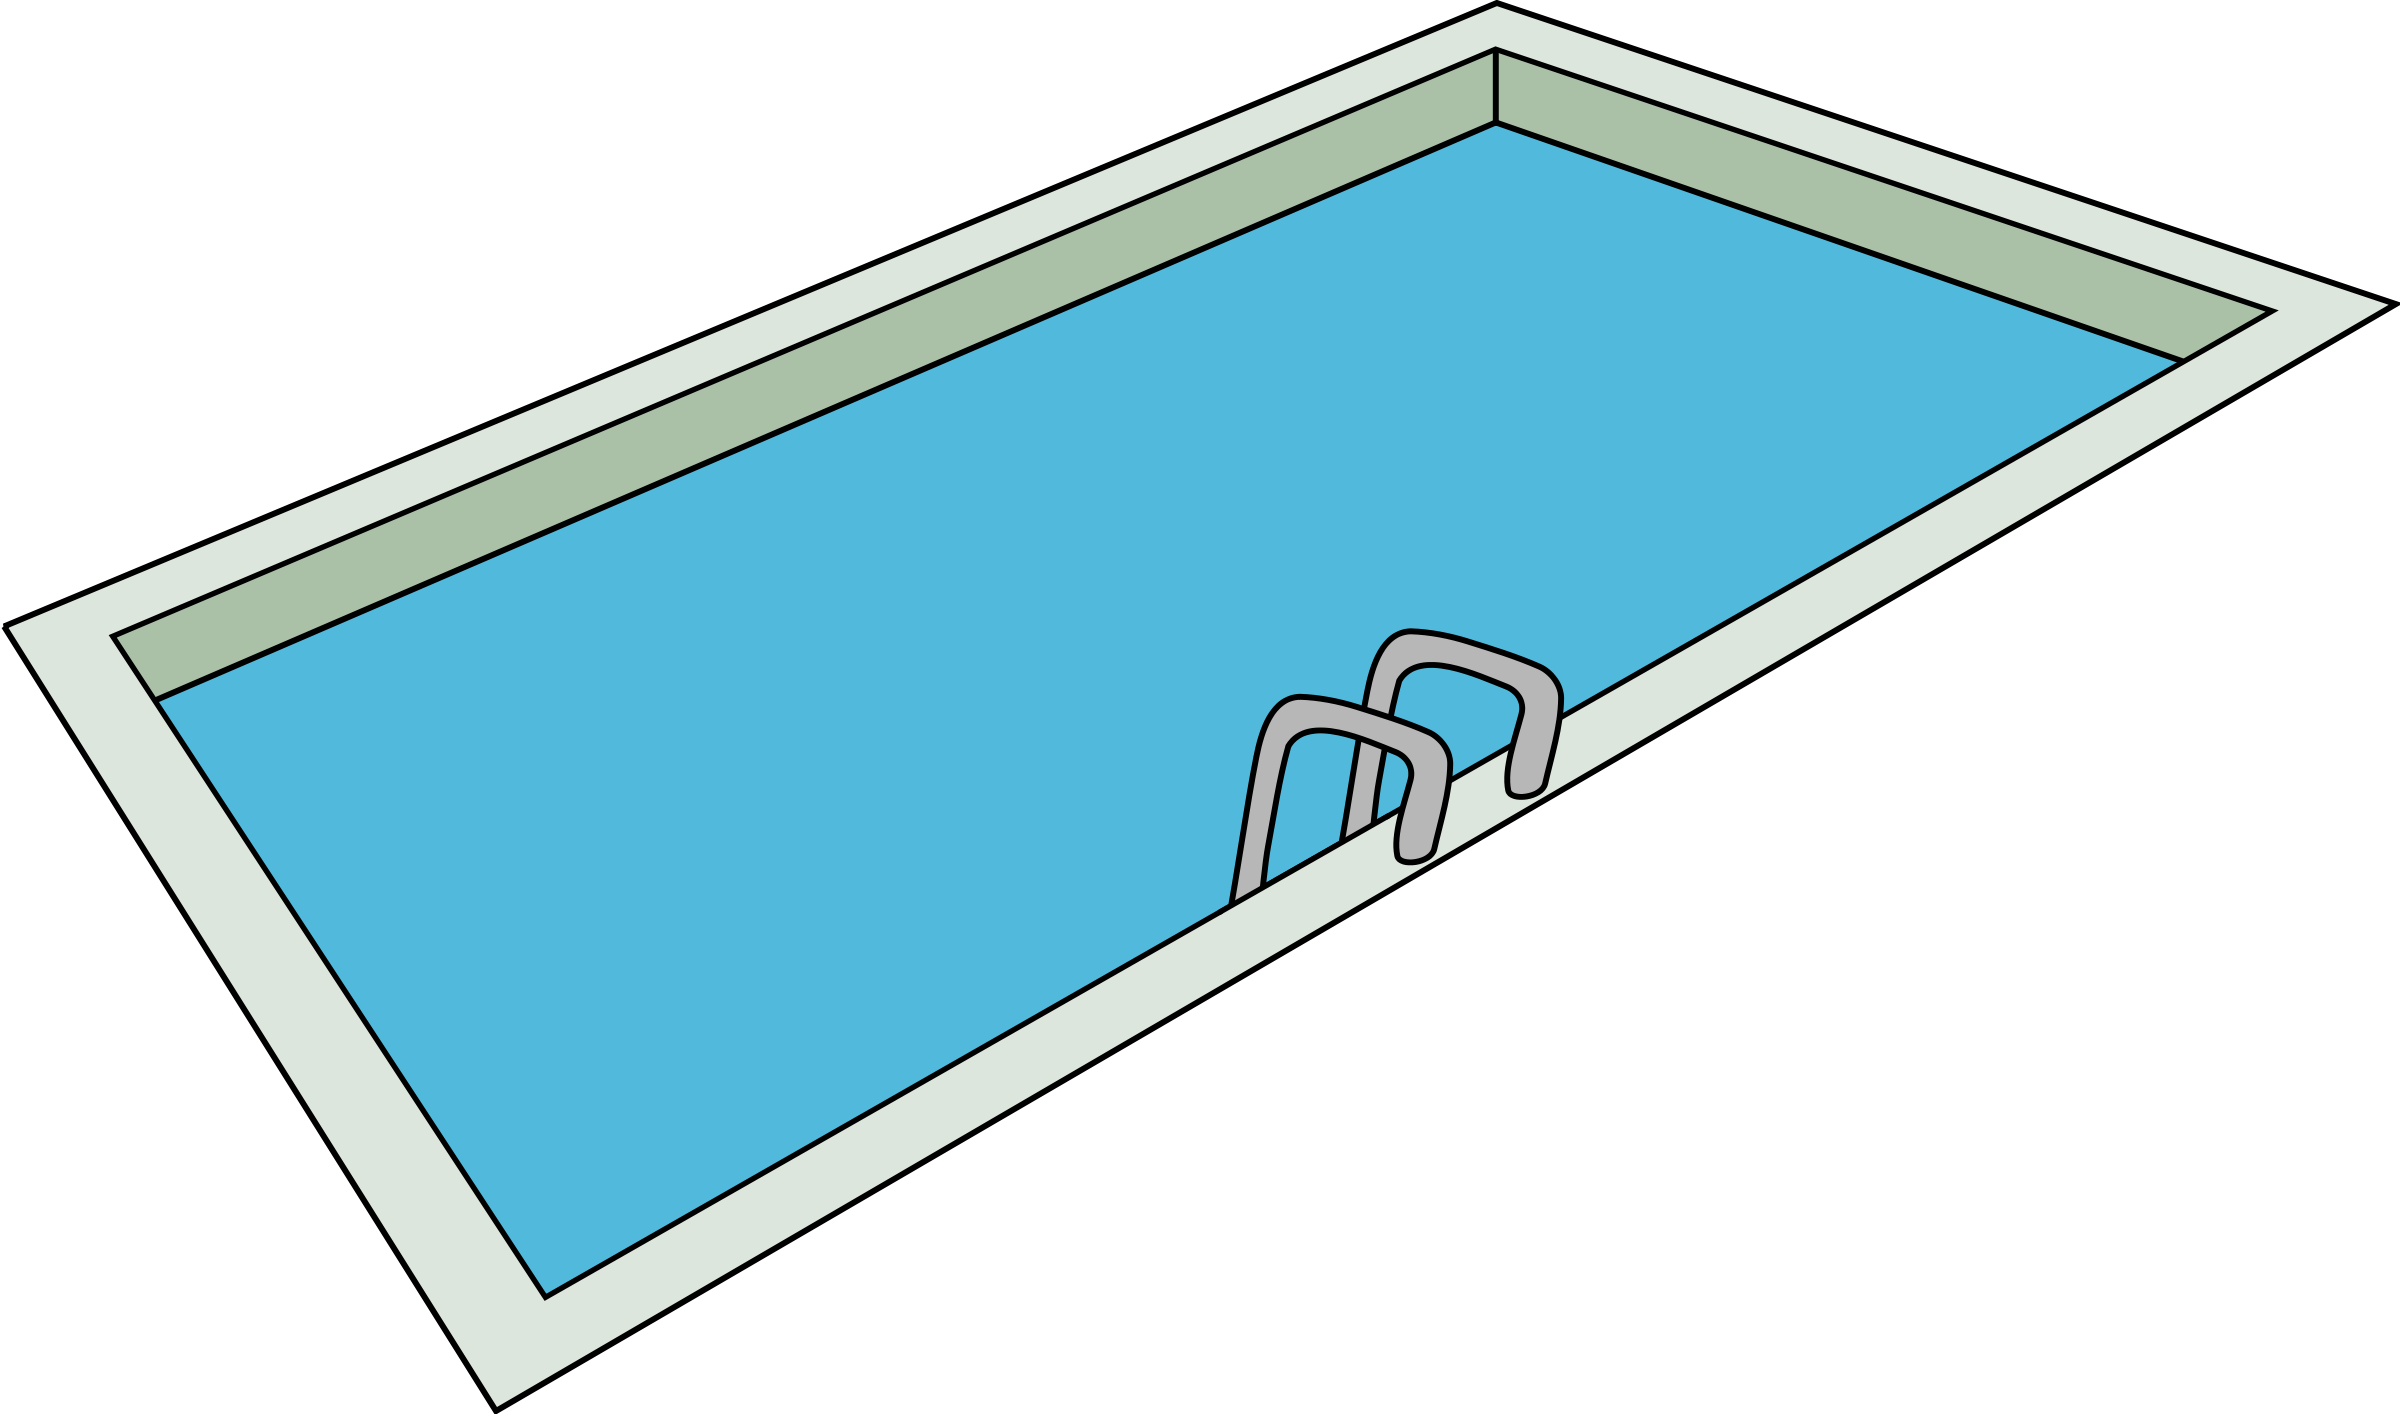 pool clipart-pool clipart-3